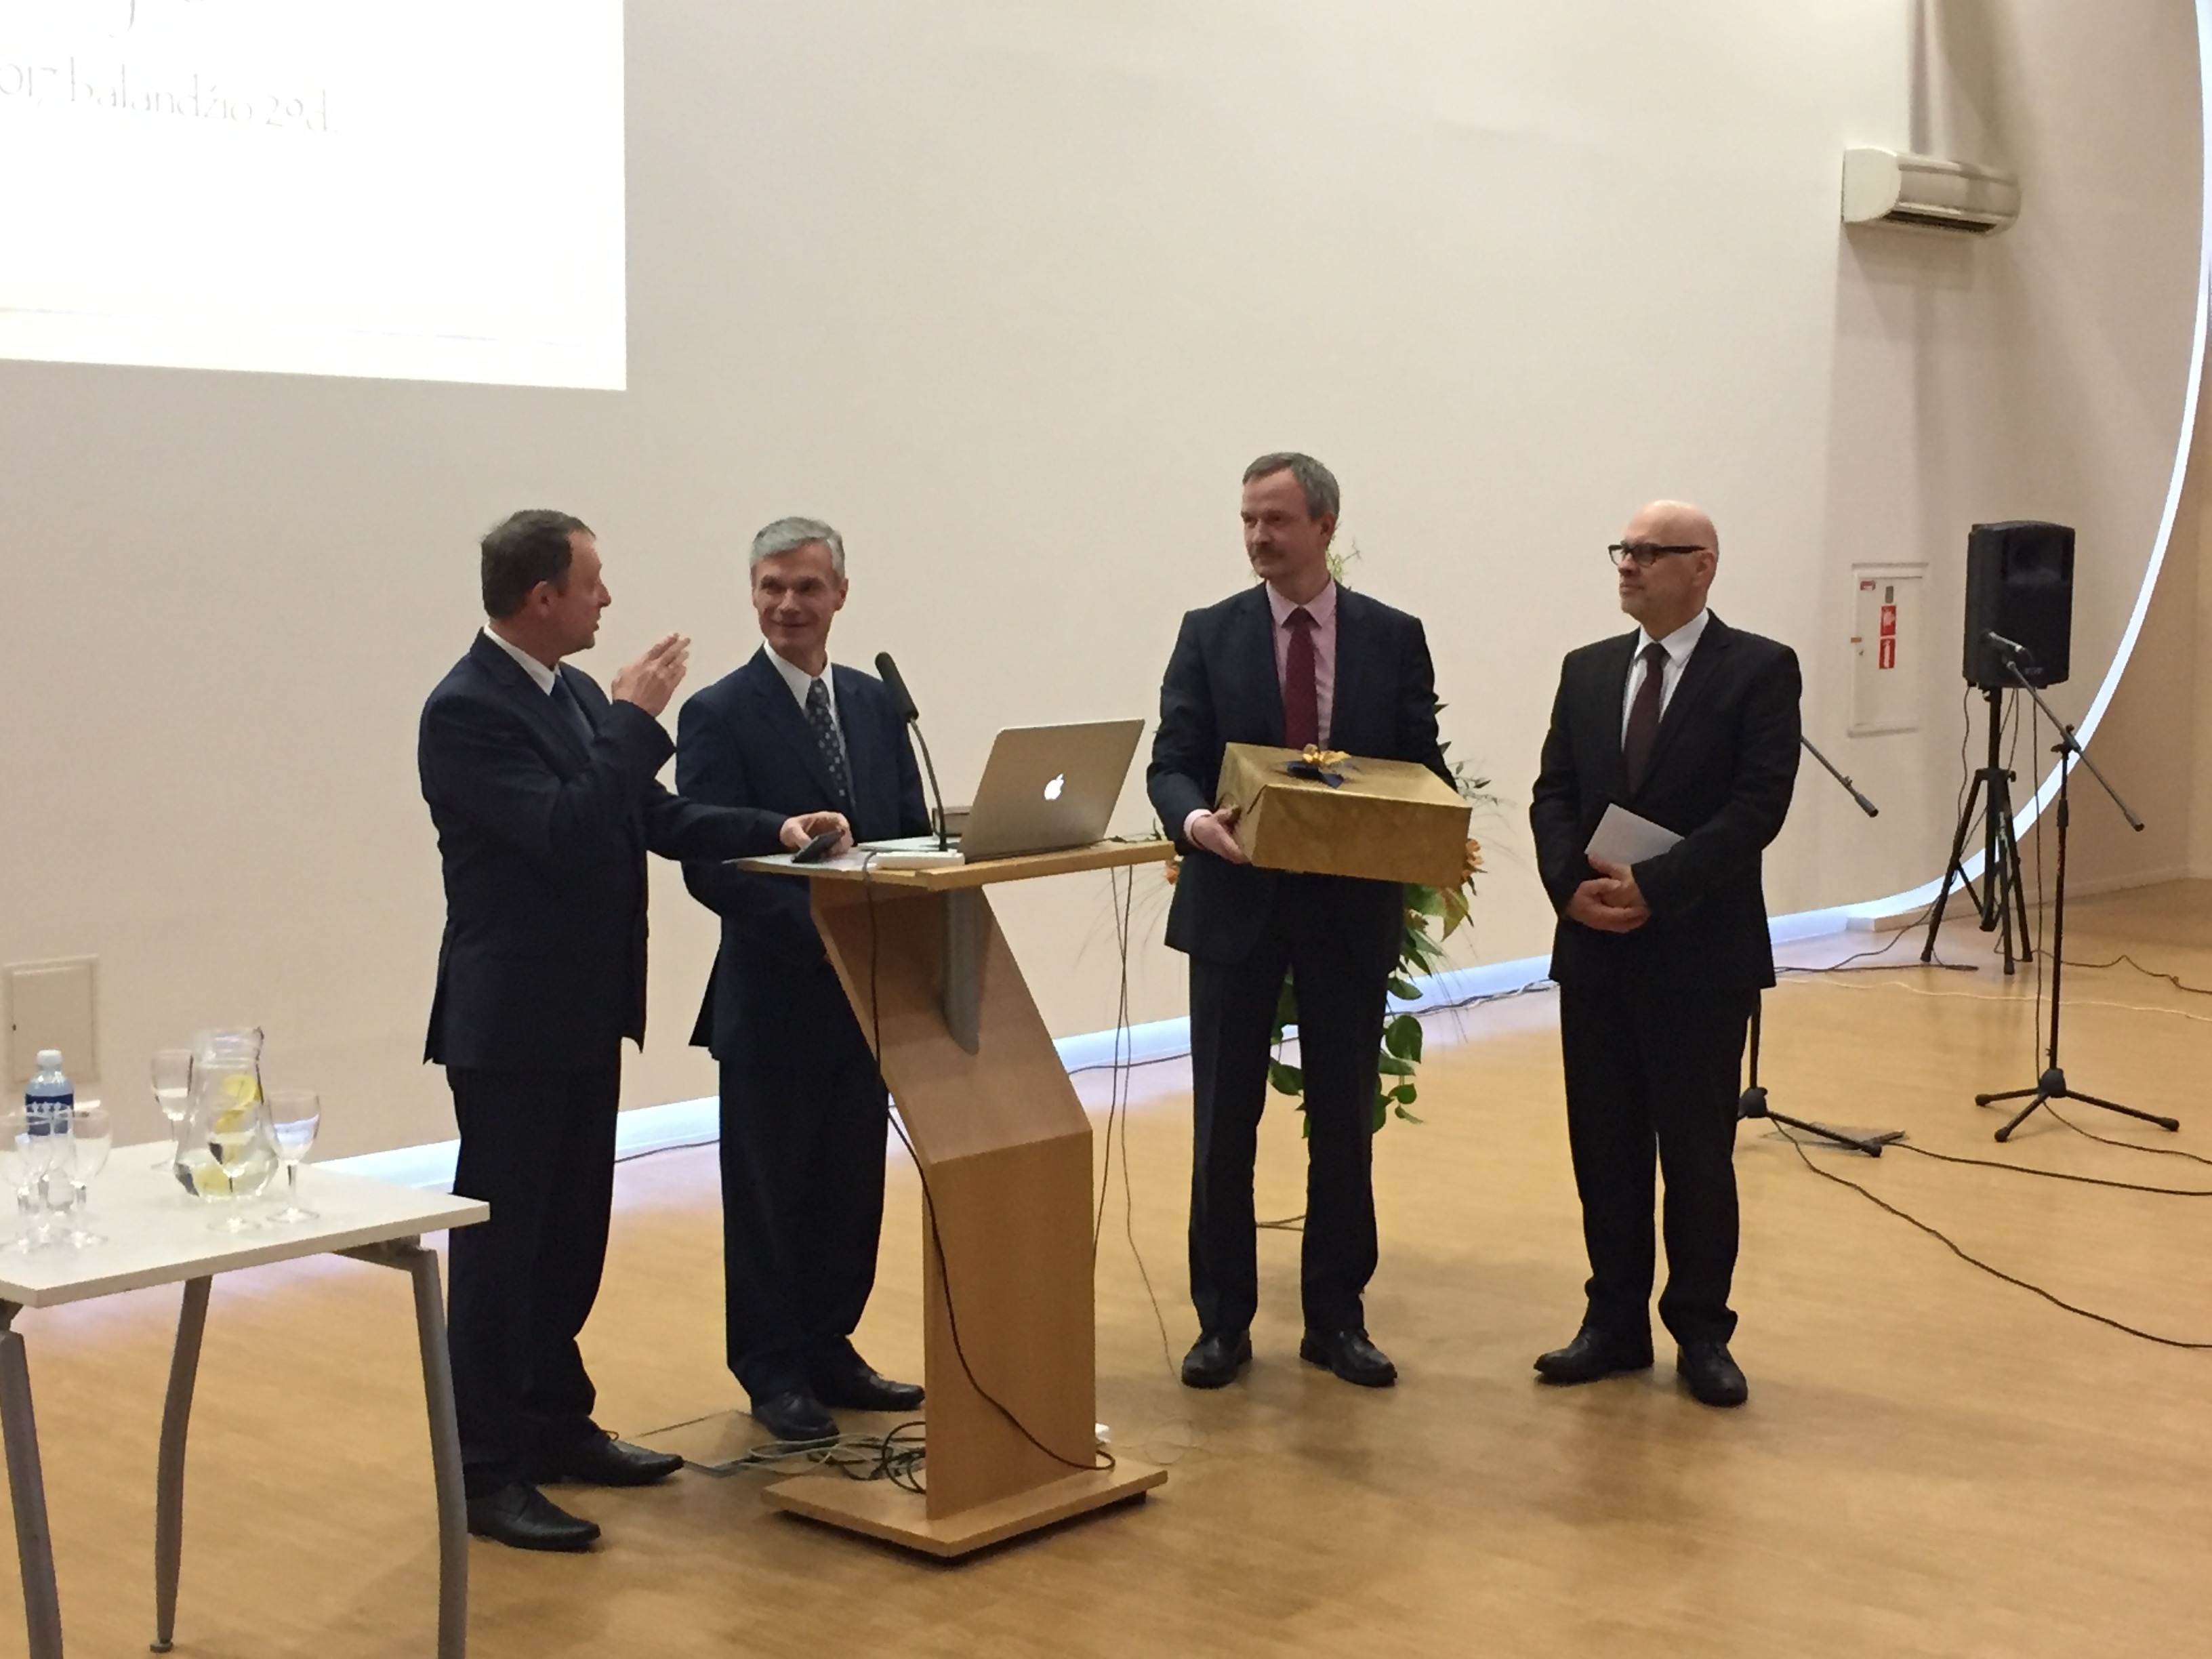 David Nõmmik (left) presents a gift on behalf of the Baltic Union and Estonian and Latvian Conferences